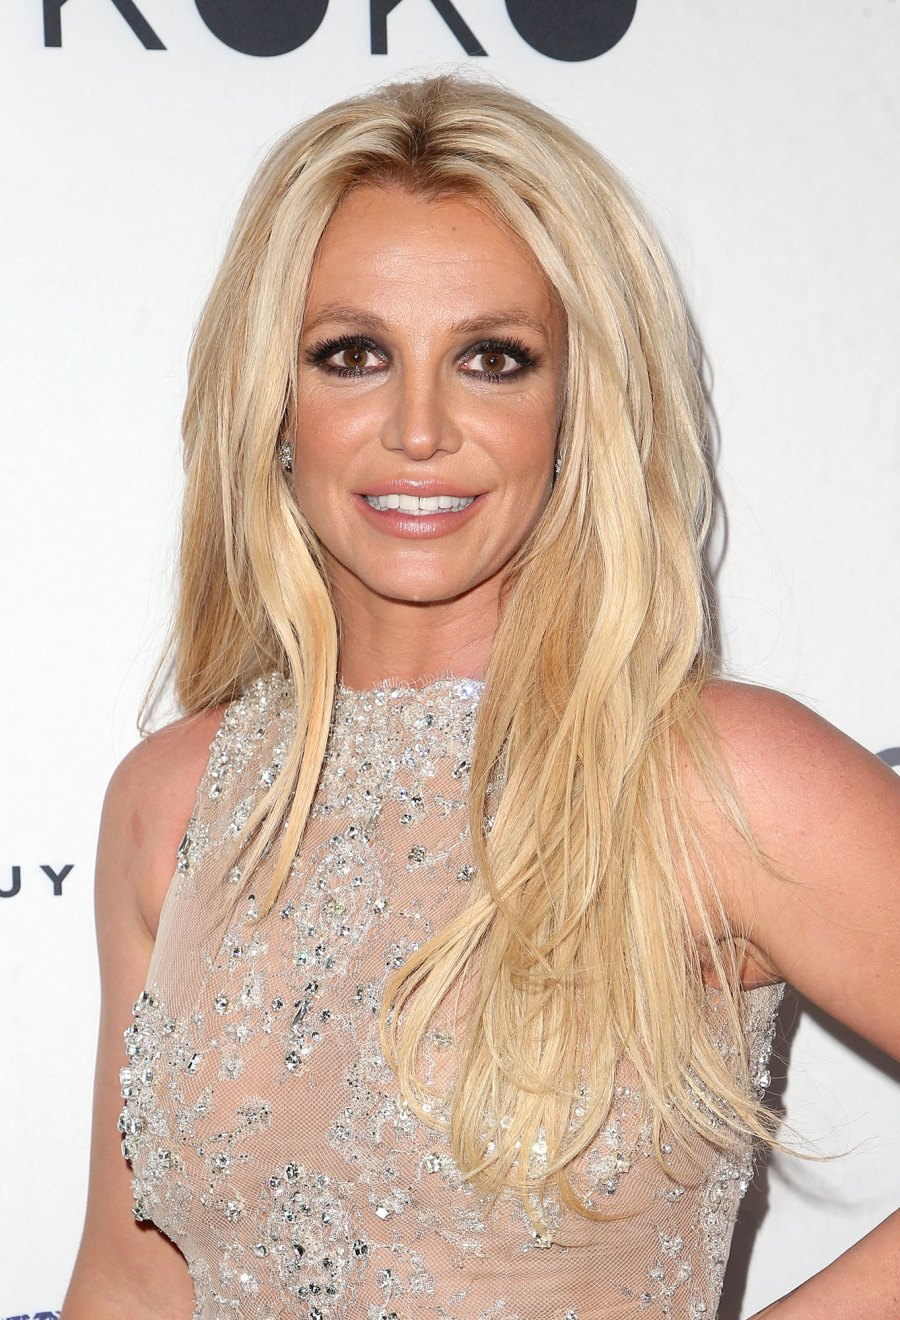 She Specializes in Conservatorships Who Is Jodi Montgomery 5 Things to Know About the Woman Britney Spears Wants as Her Conservator